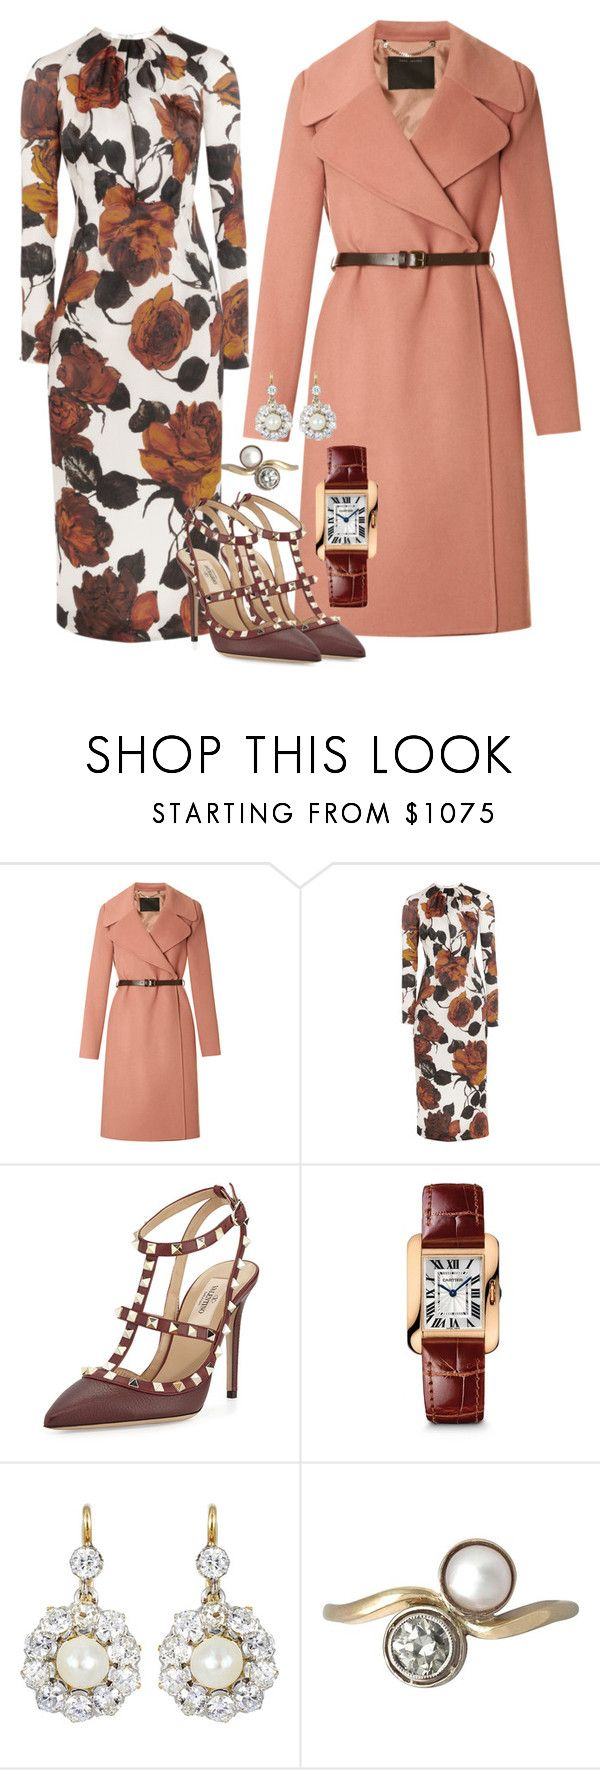 """""""Untitled #197"""" by hamilton-court ❤ liked on Polyvore featuring Marc Jacobs, Emilia Wickstead, Valentino and Cartier"""